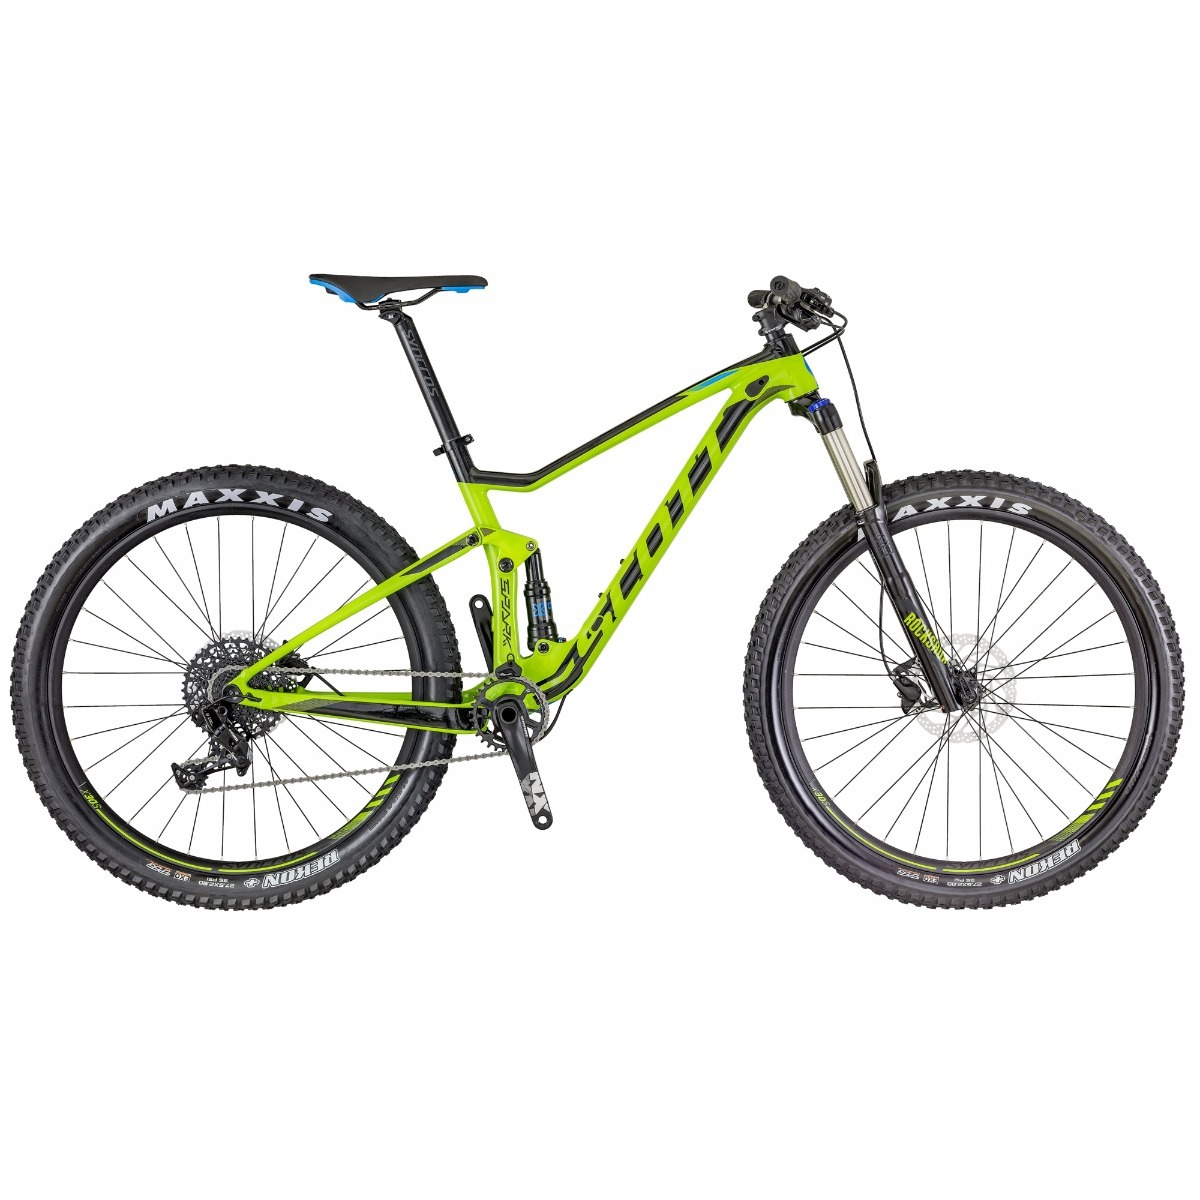 Cuadro Scott Spark Doble Suspension - Bicicletas y Ciclismo en ...